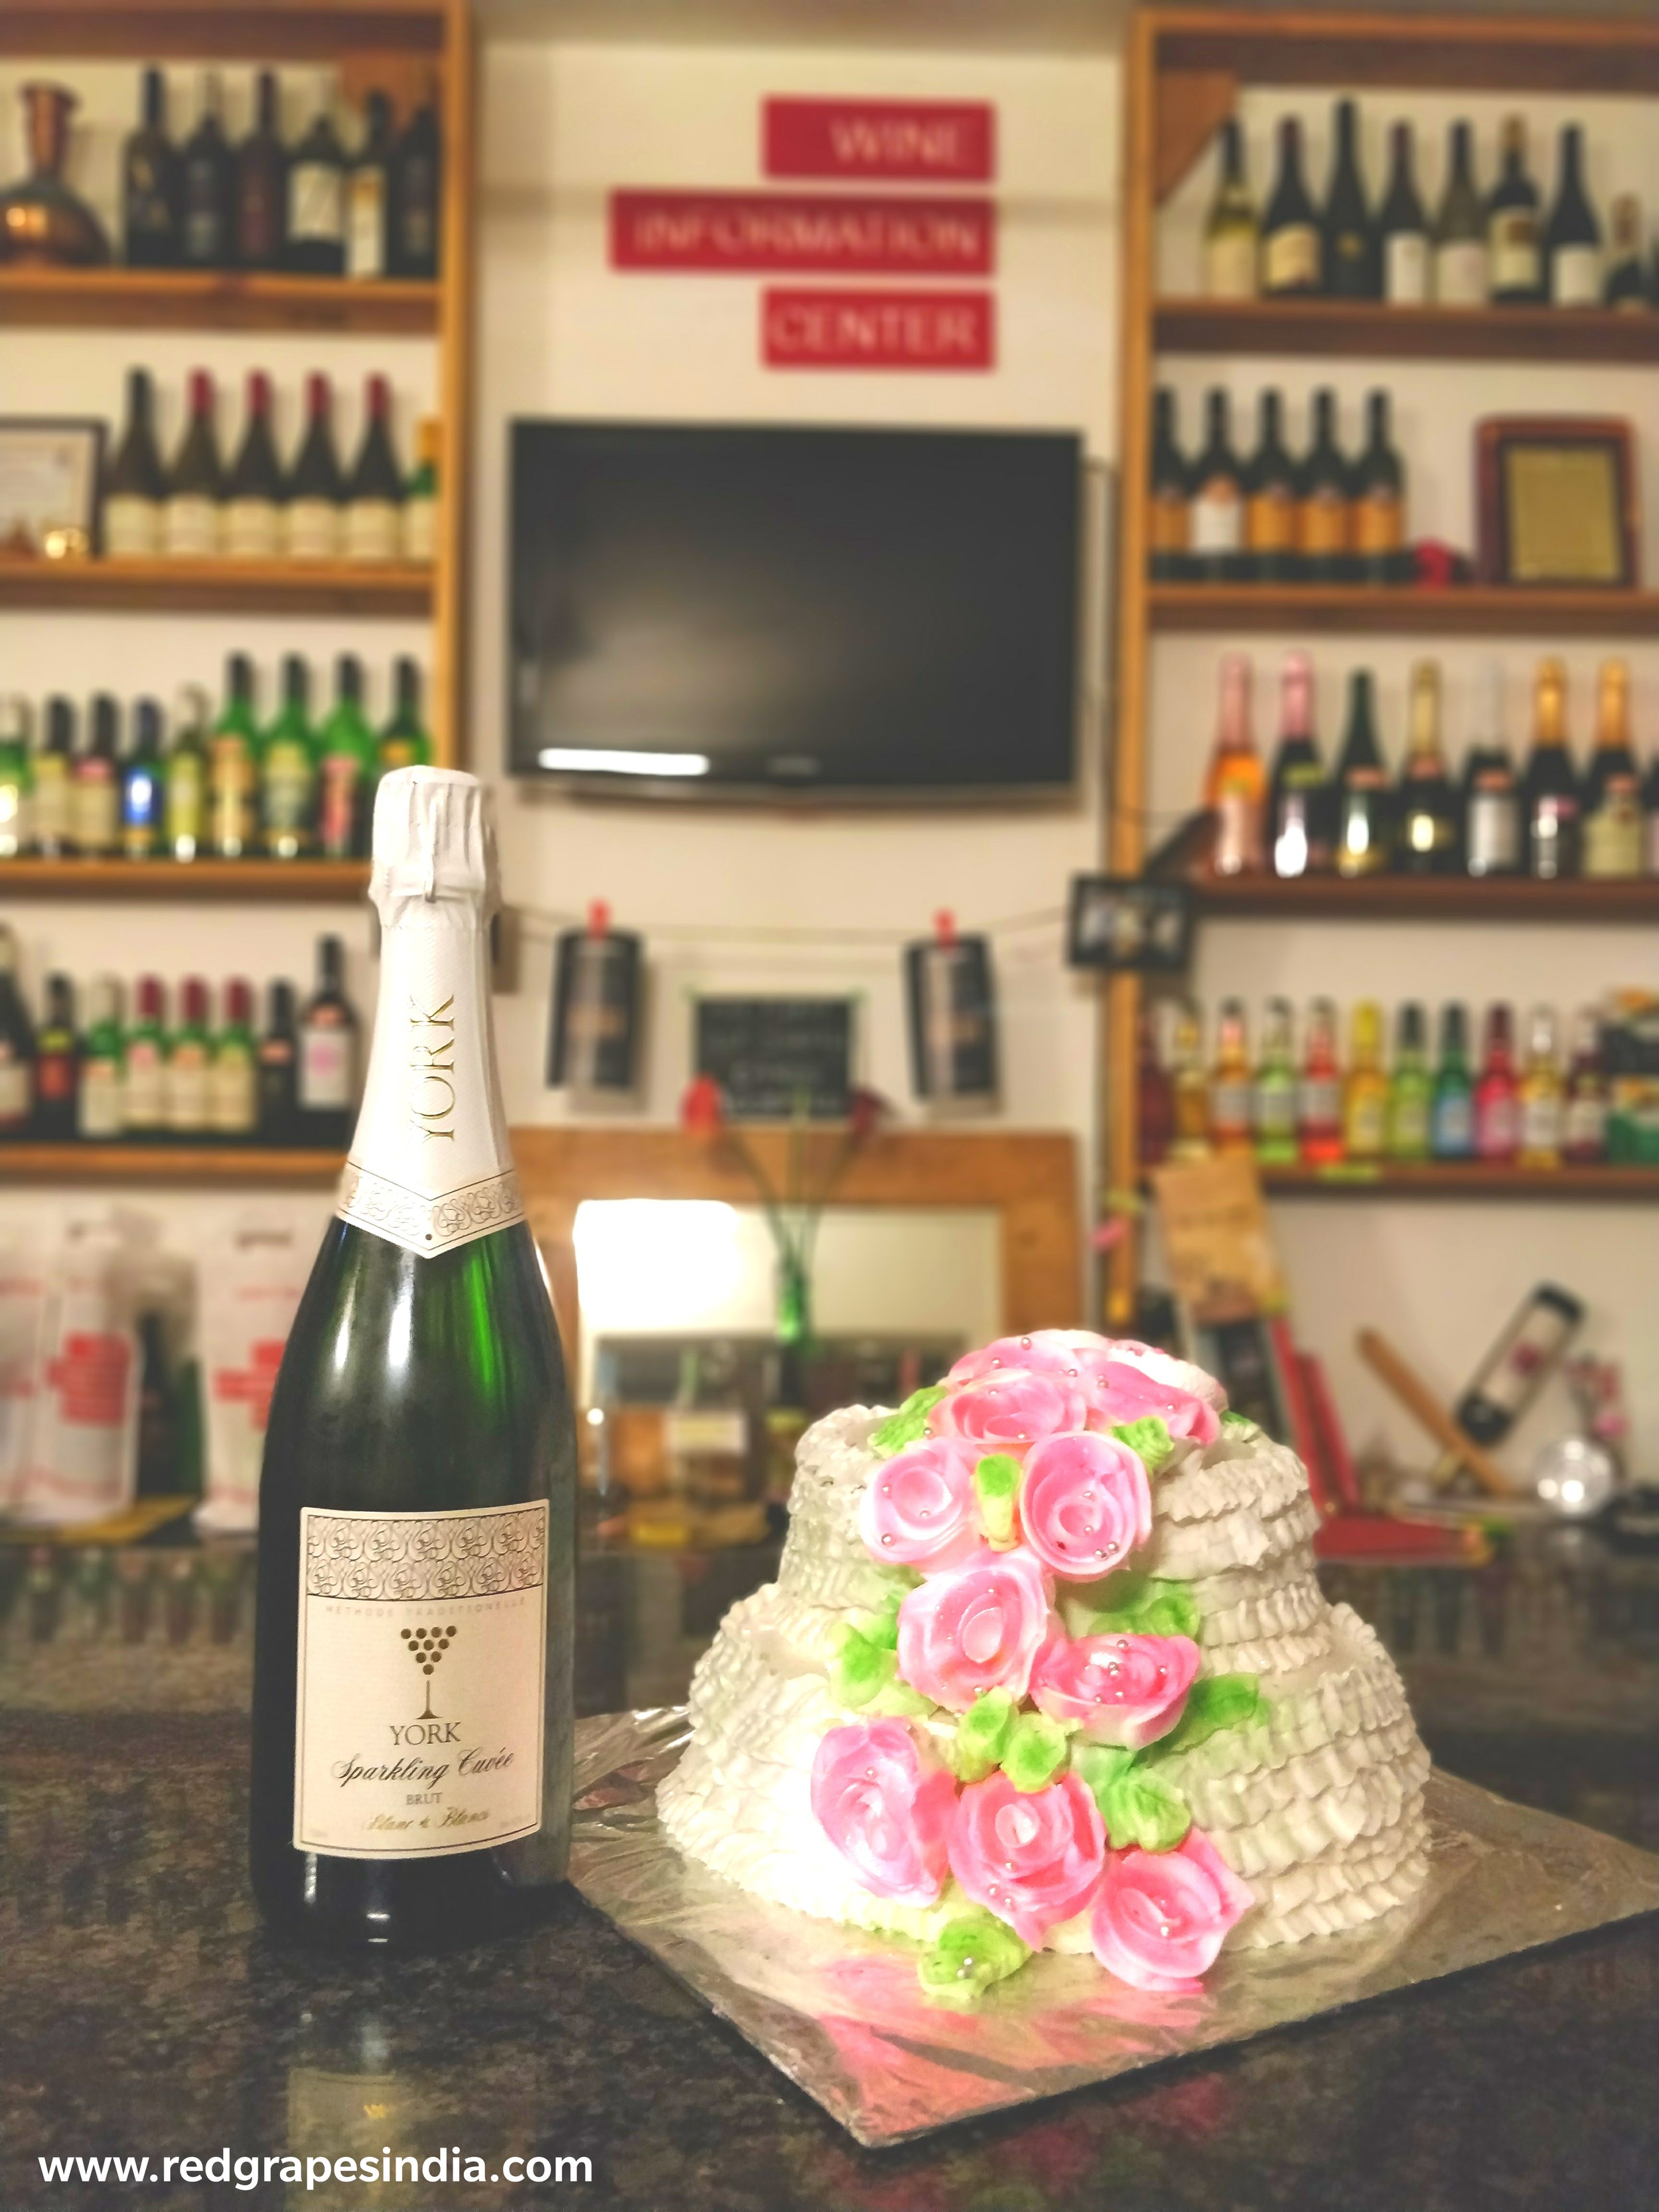 York sparkling brut wine and white cake for christmas event at wine information center at wine park